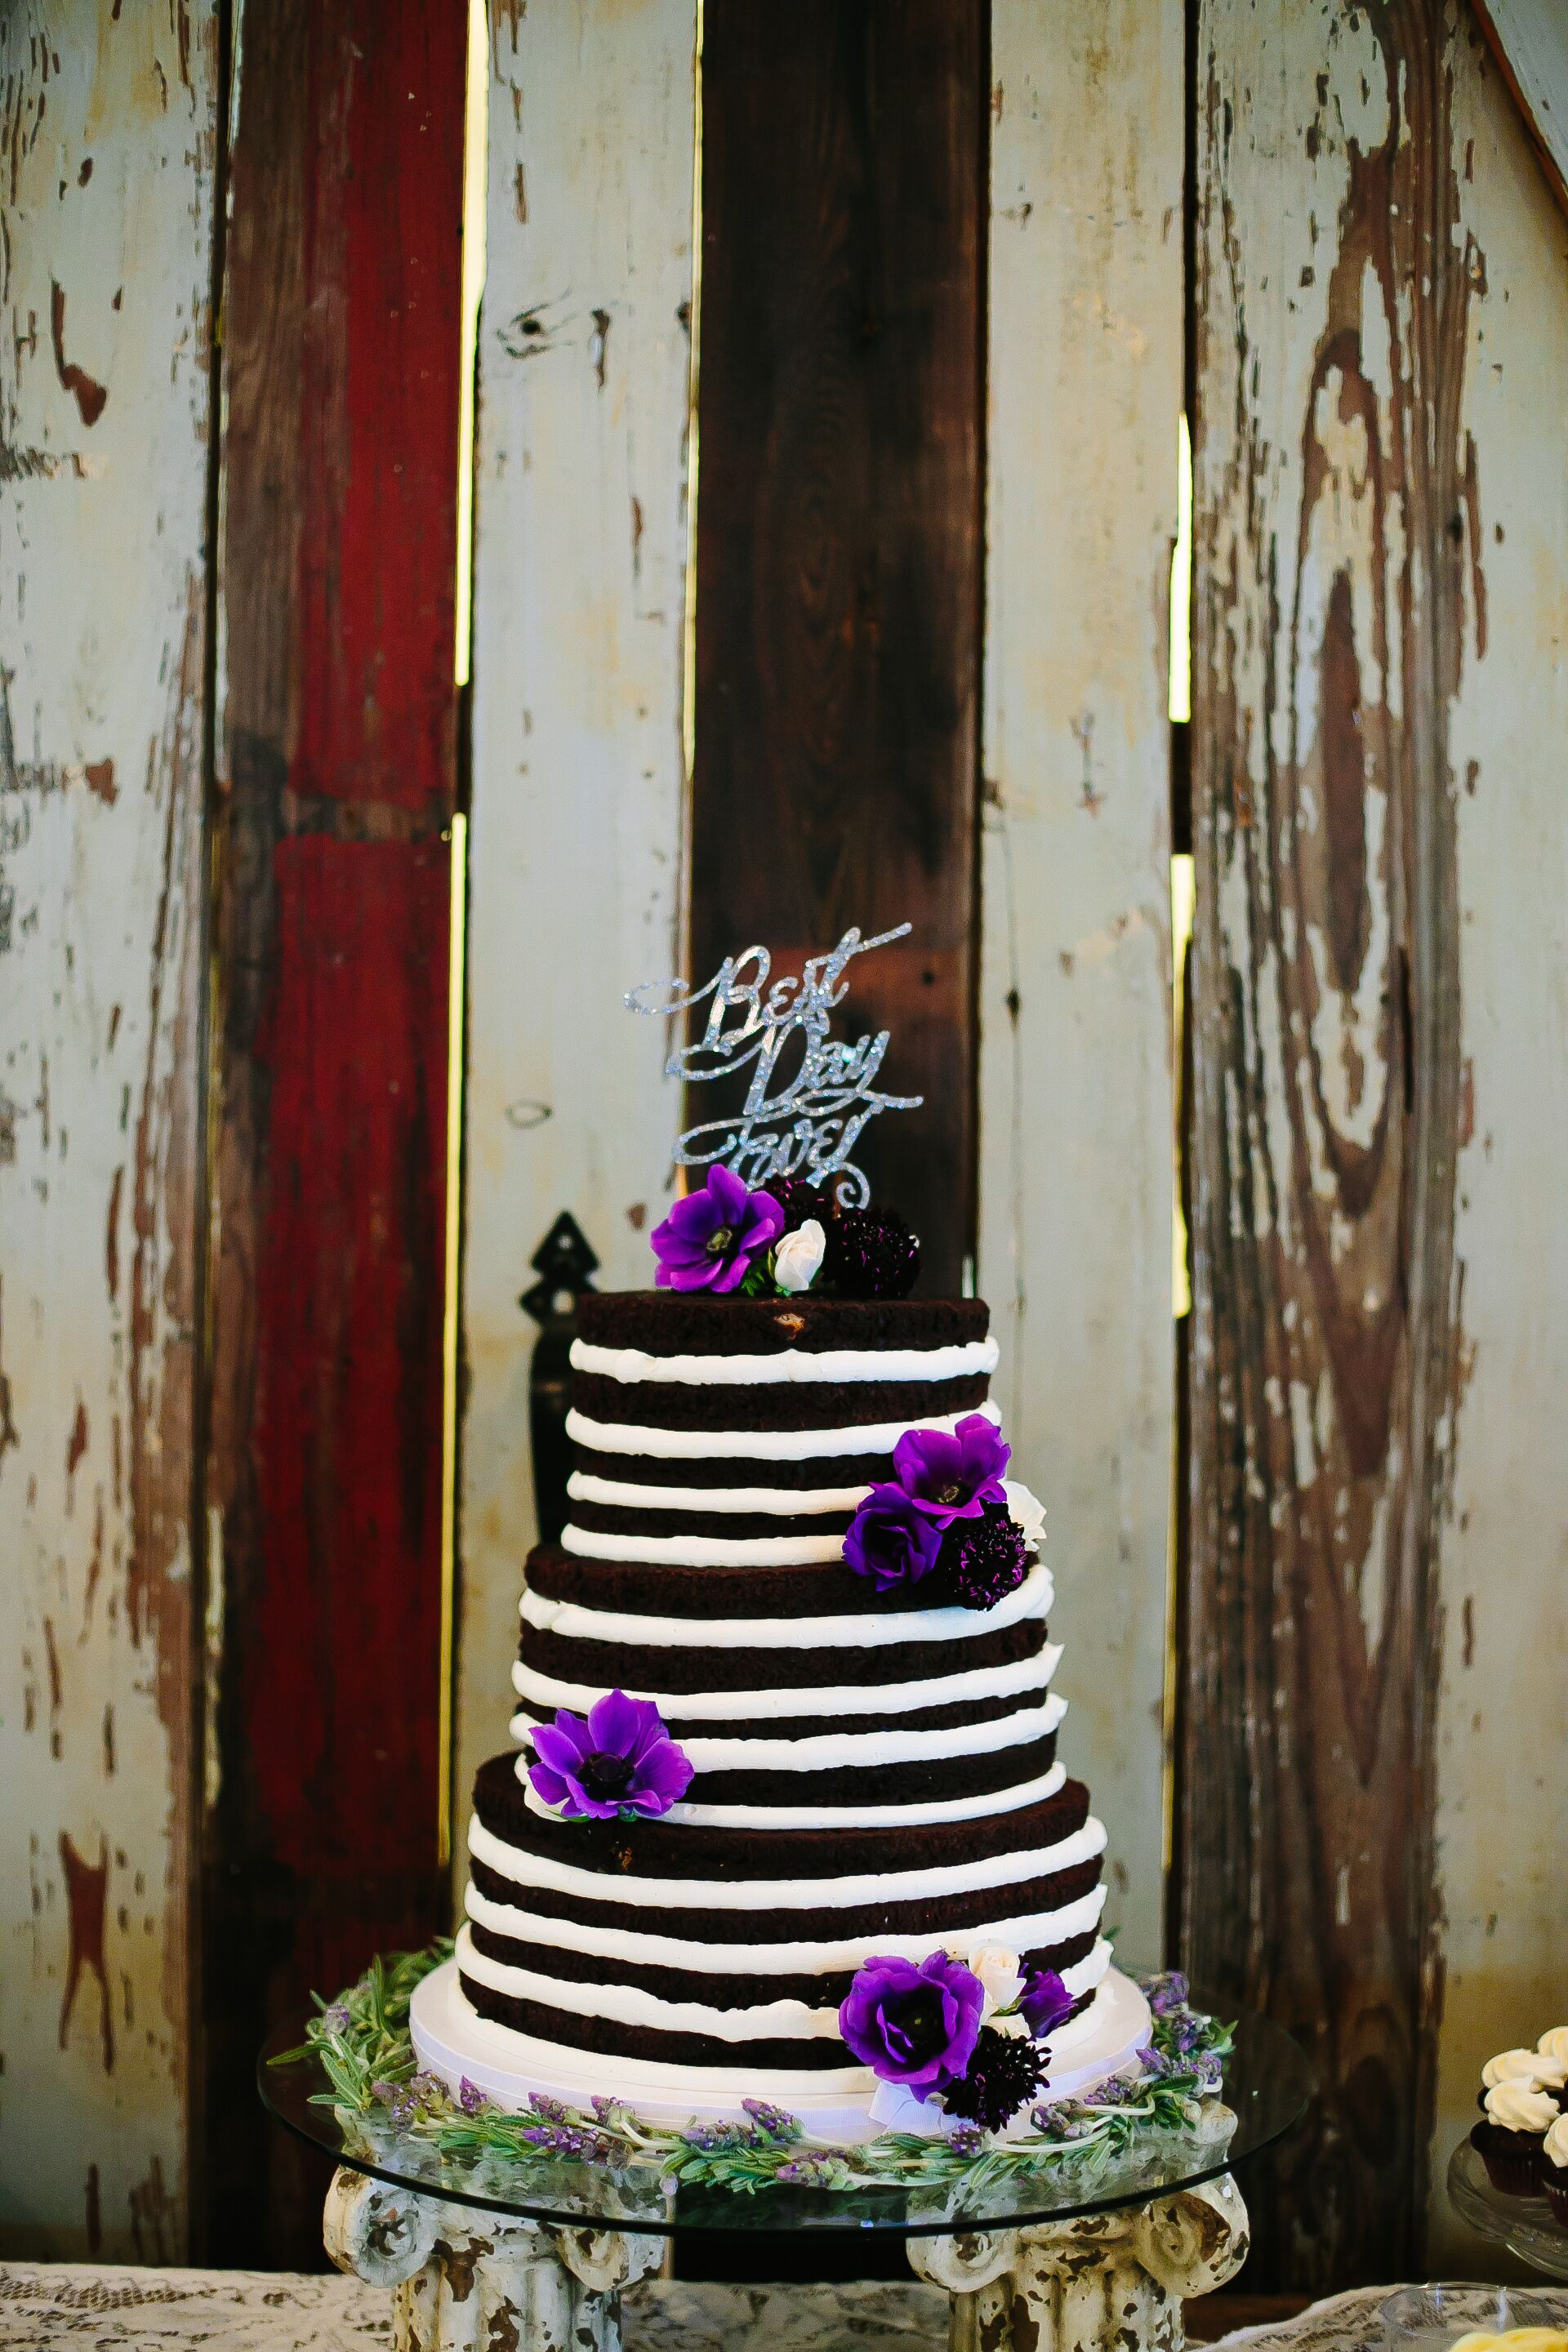 Black and white naked cake with purple flowers